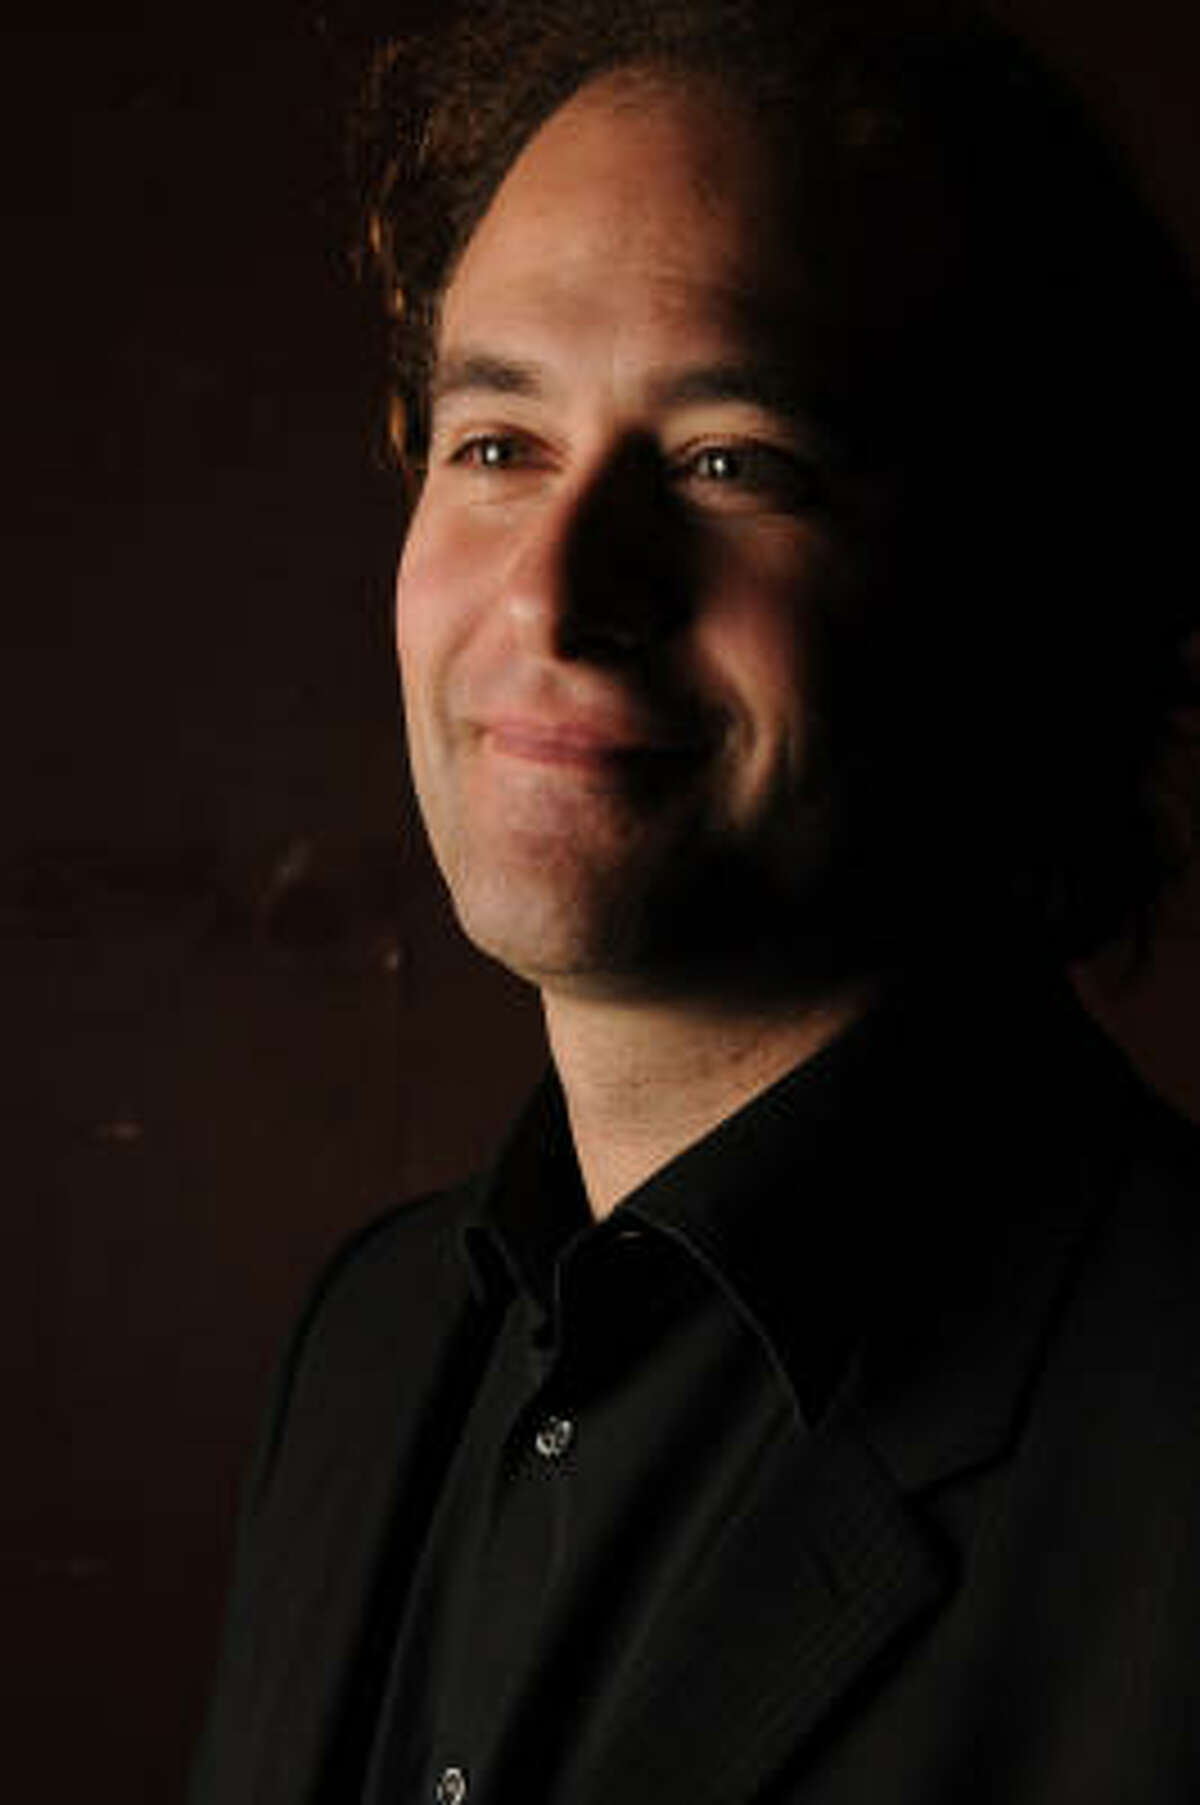 LOOKING AHEAD: Antoine Plante, artistic director and co-founder of Mercury Baroque, is gradually expanding the early-music ensemble's programming to include other music.